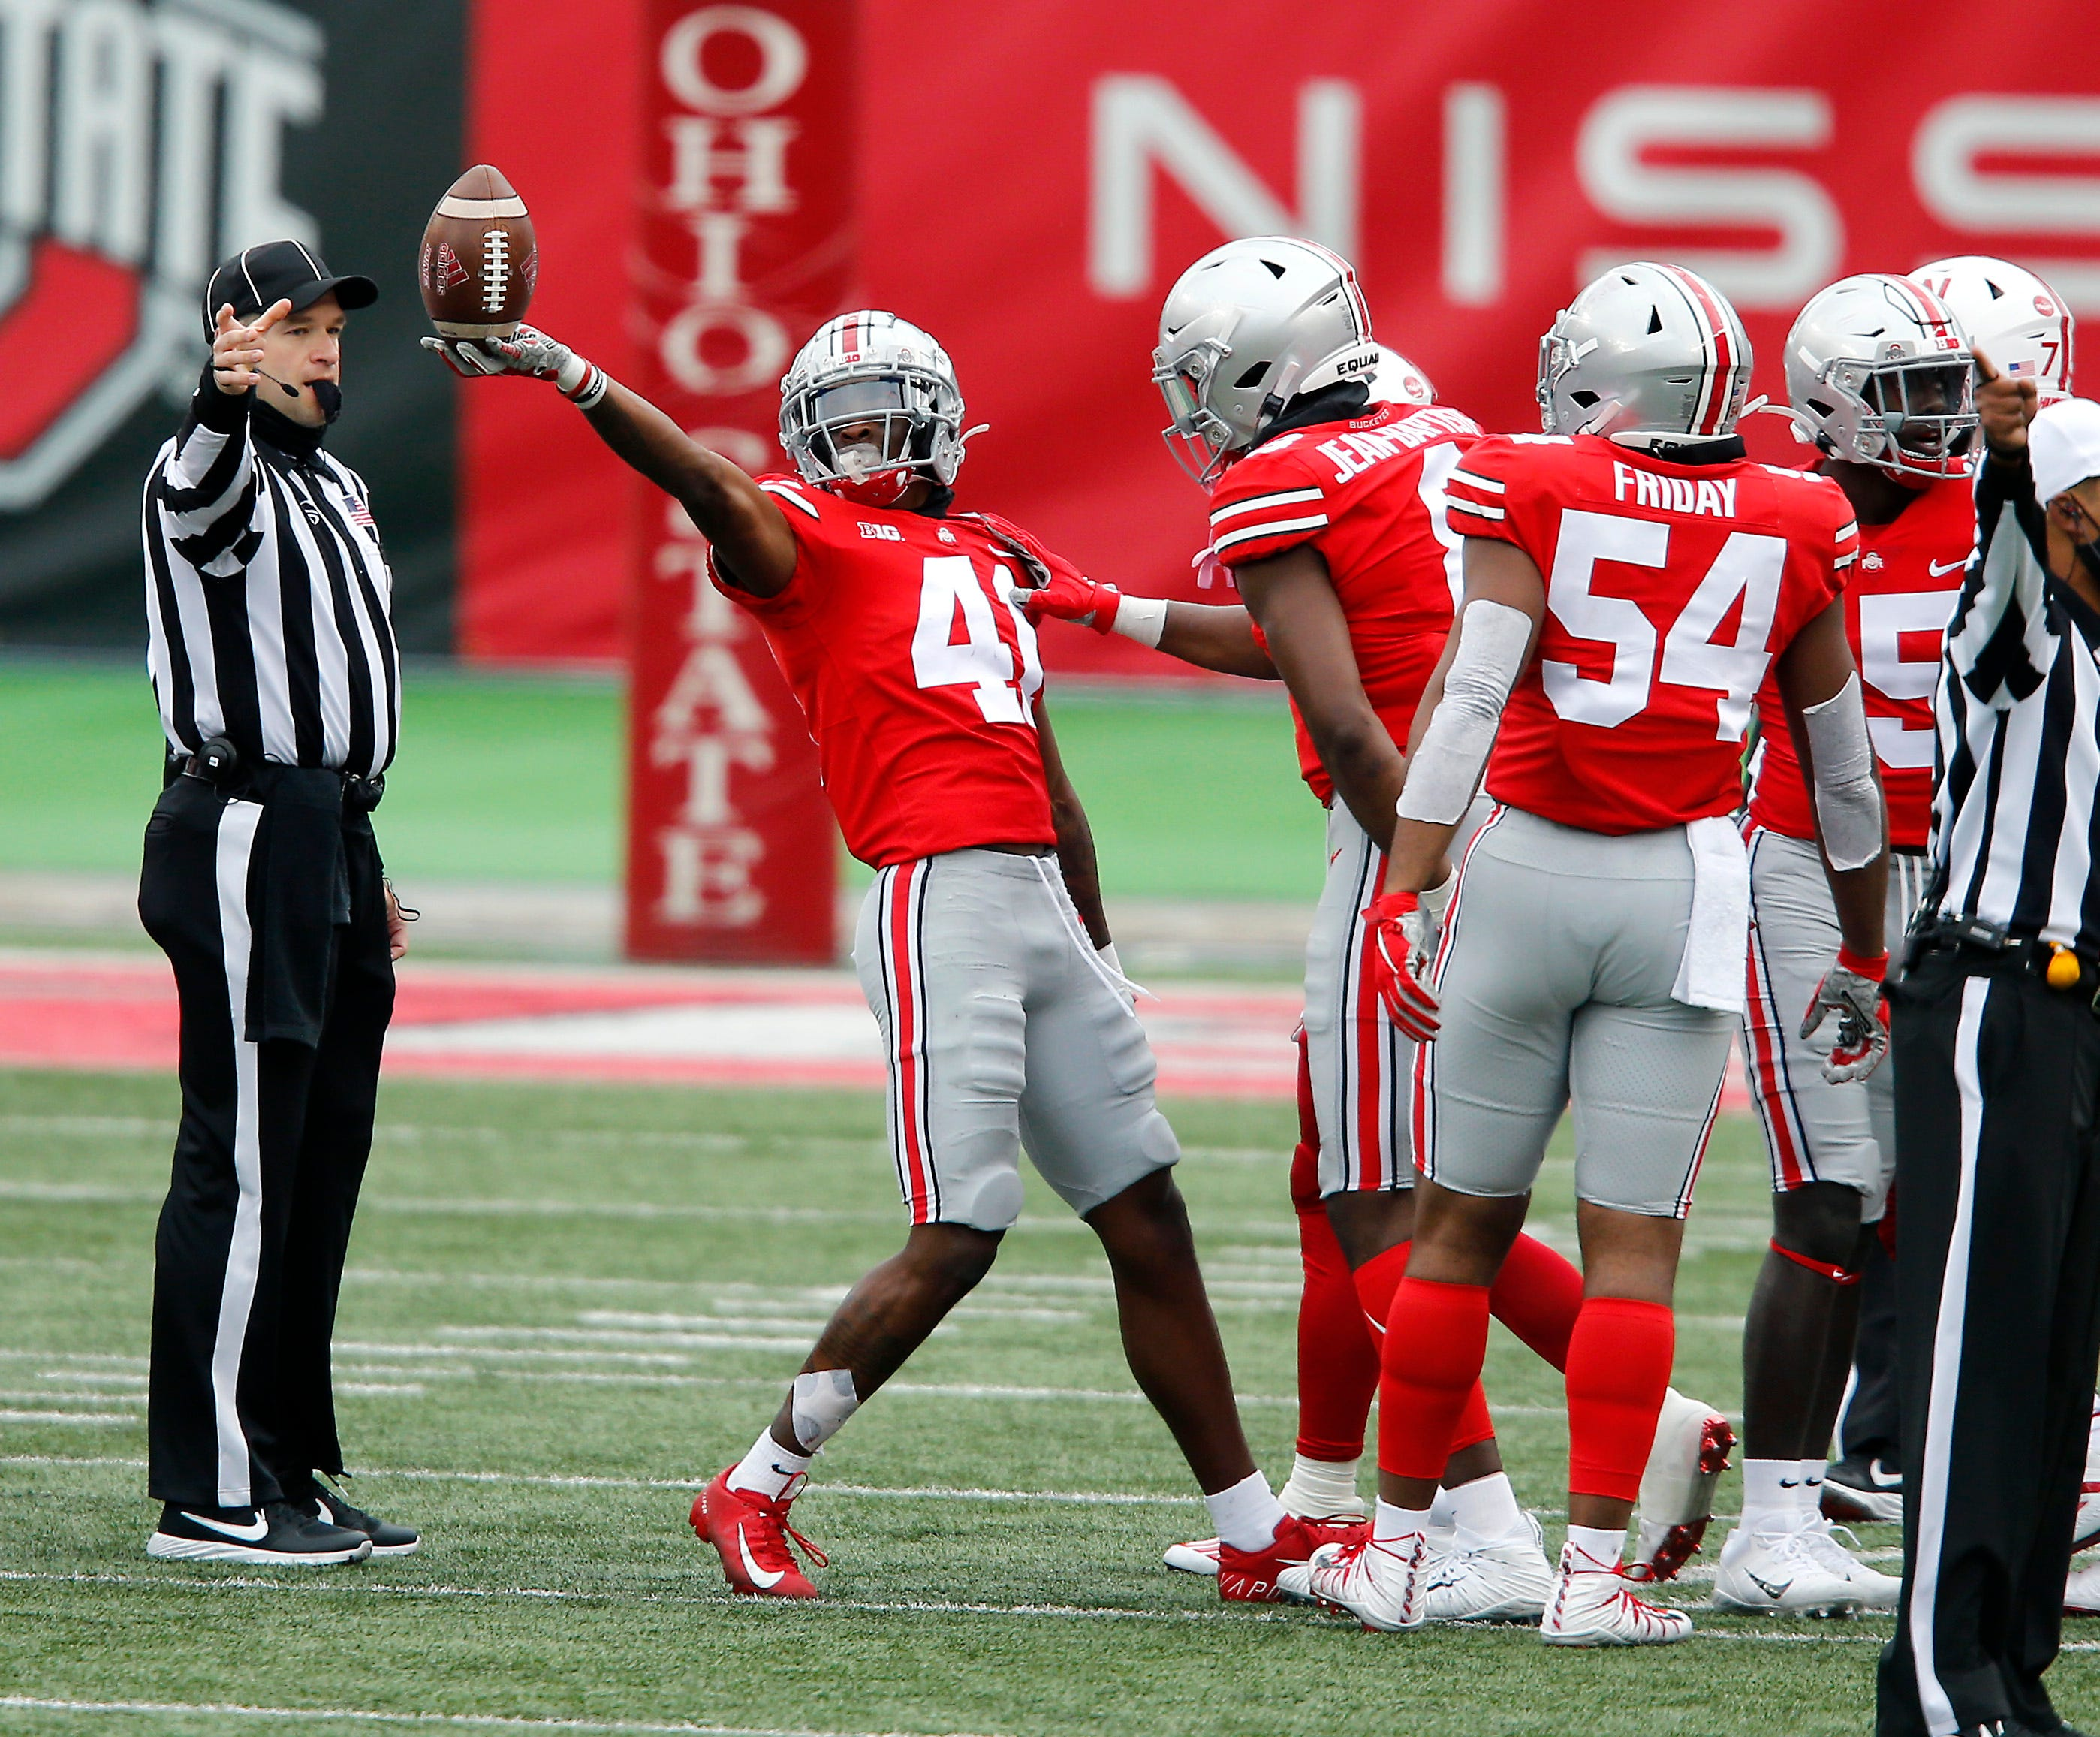 Ohio State up to No. 3 in Amway Coaches Poll behind Clemson, Alabama